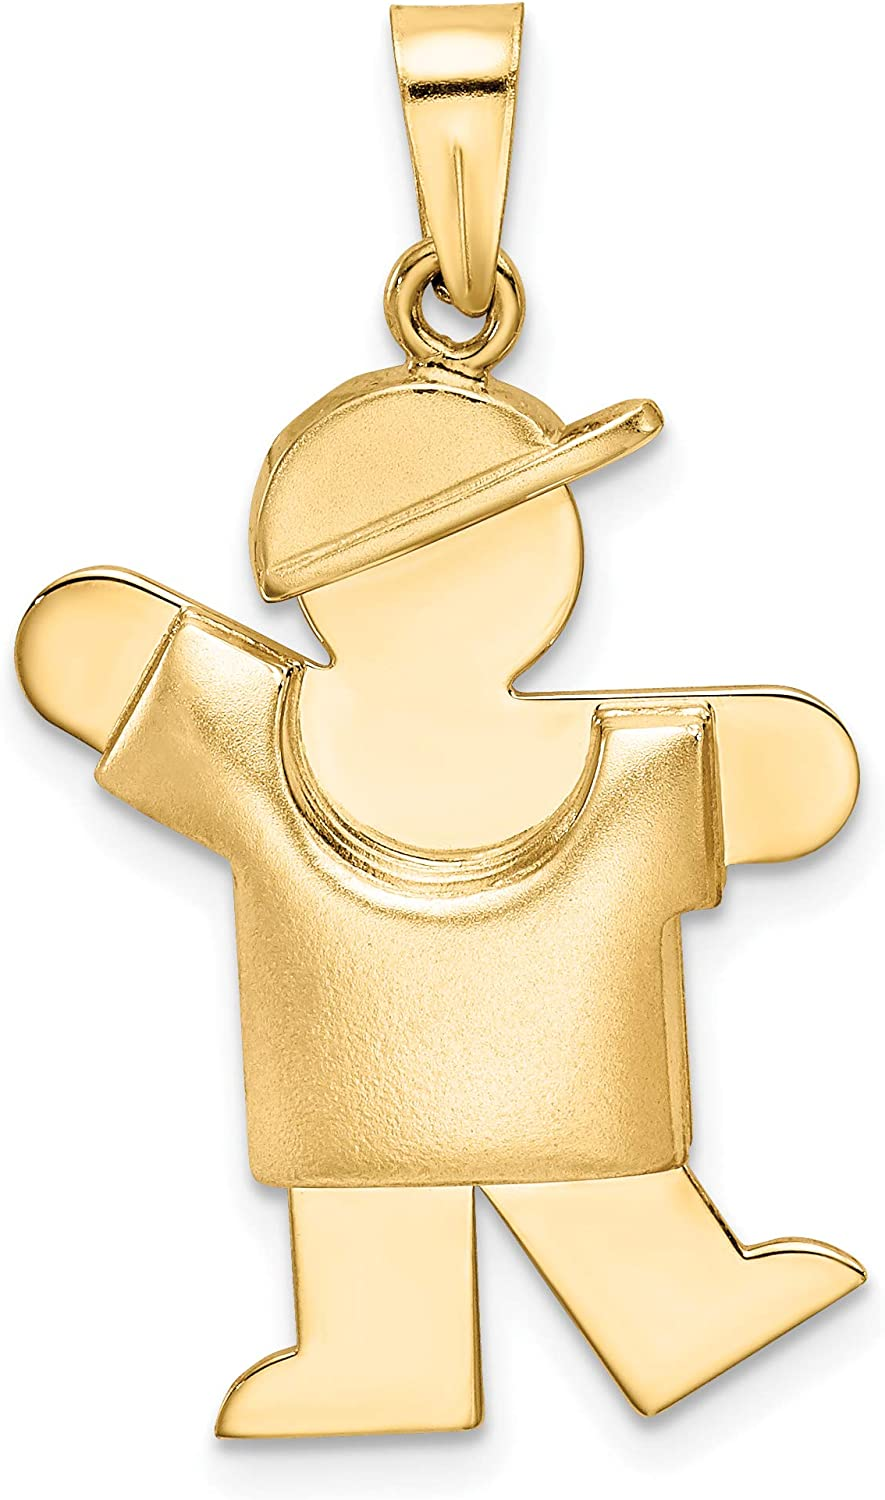 Mireval 14k Yellow Gold Puffed Boy C 40% OFF Cheap Sale Engravable with on Hat Very popular! Left